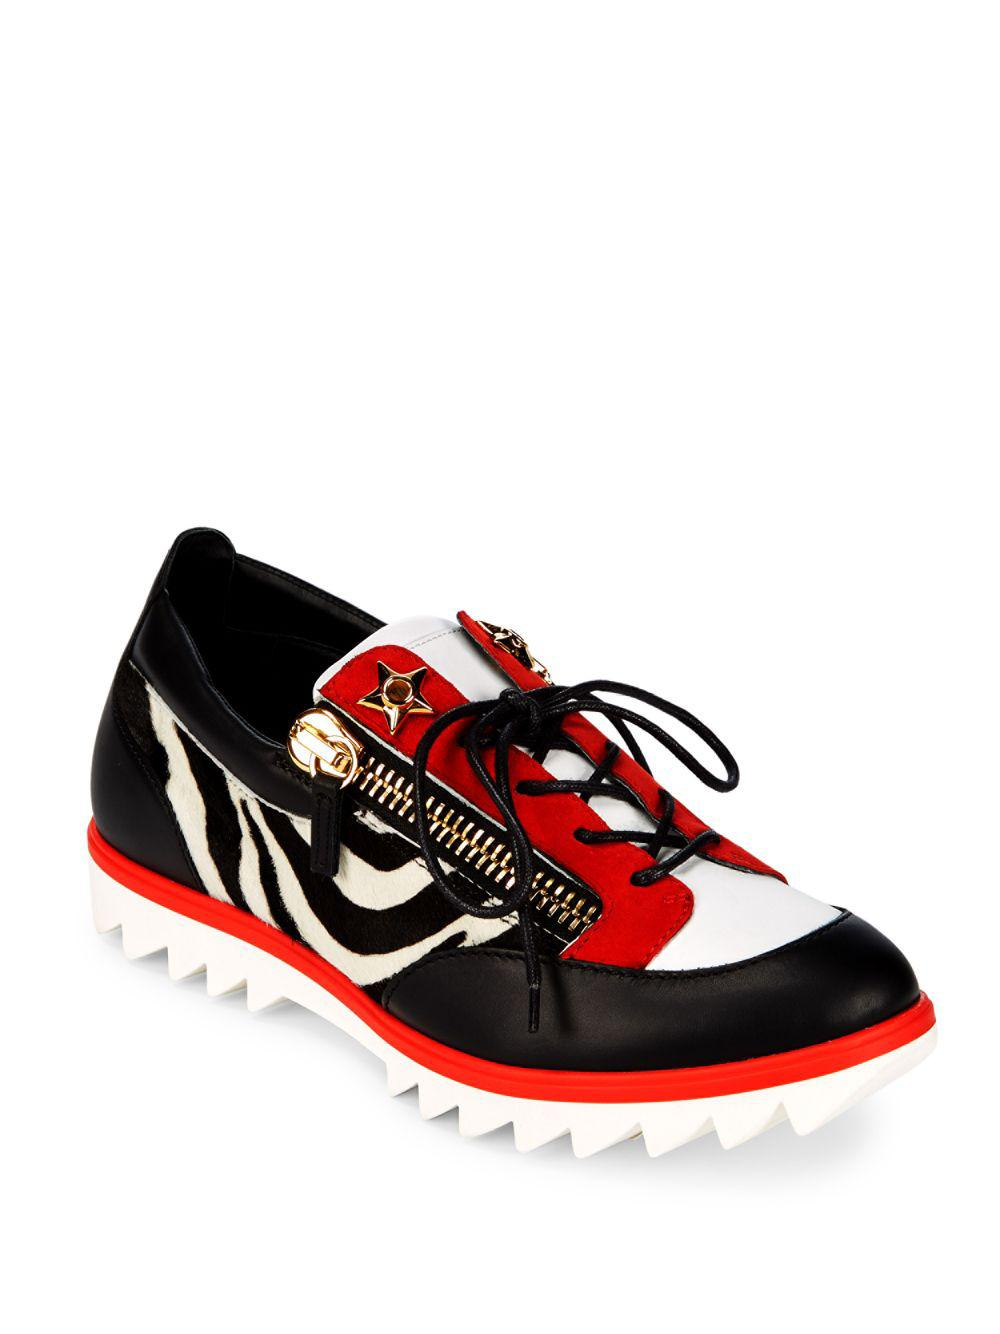 c14cb8cf5416 Giuseppe Zanotti Double Zip Lace-up Sneakers in Red - Lyst